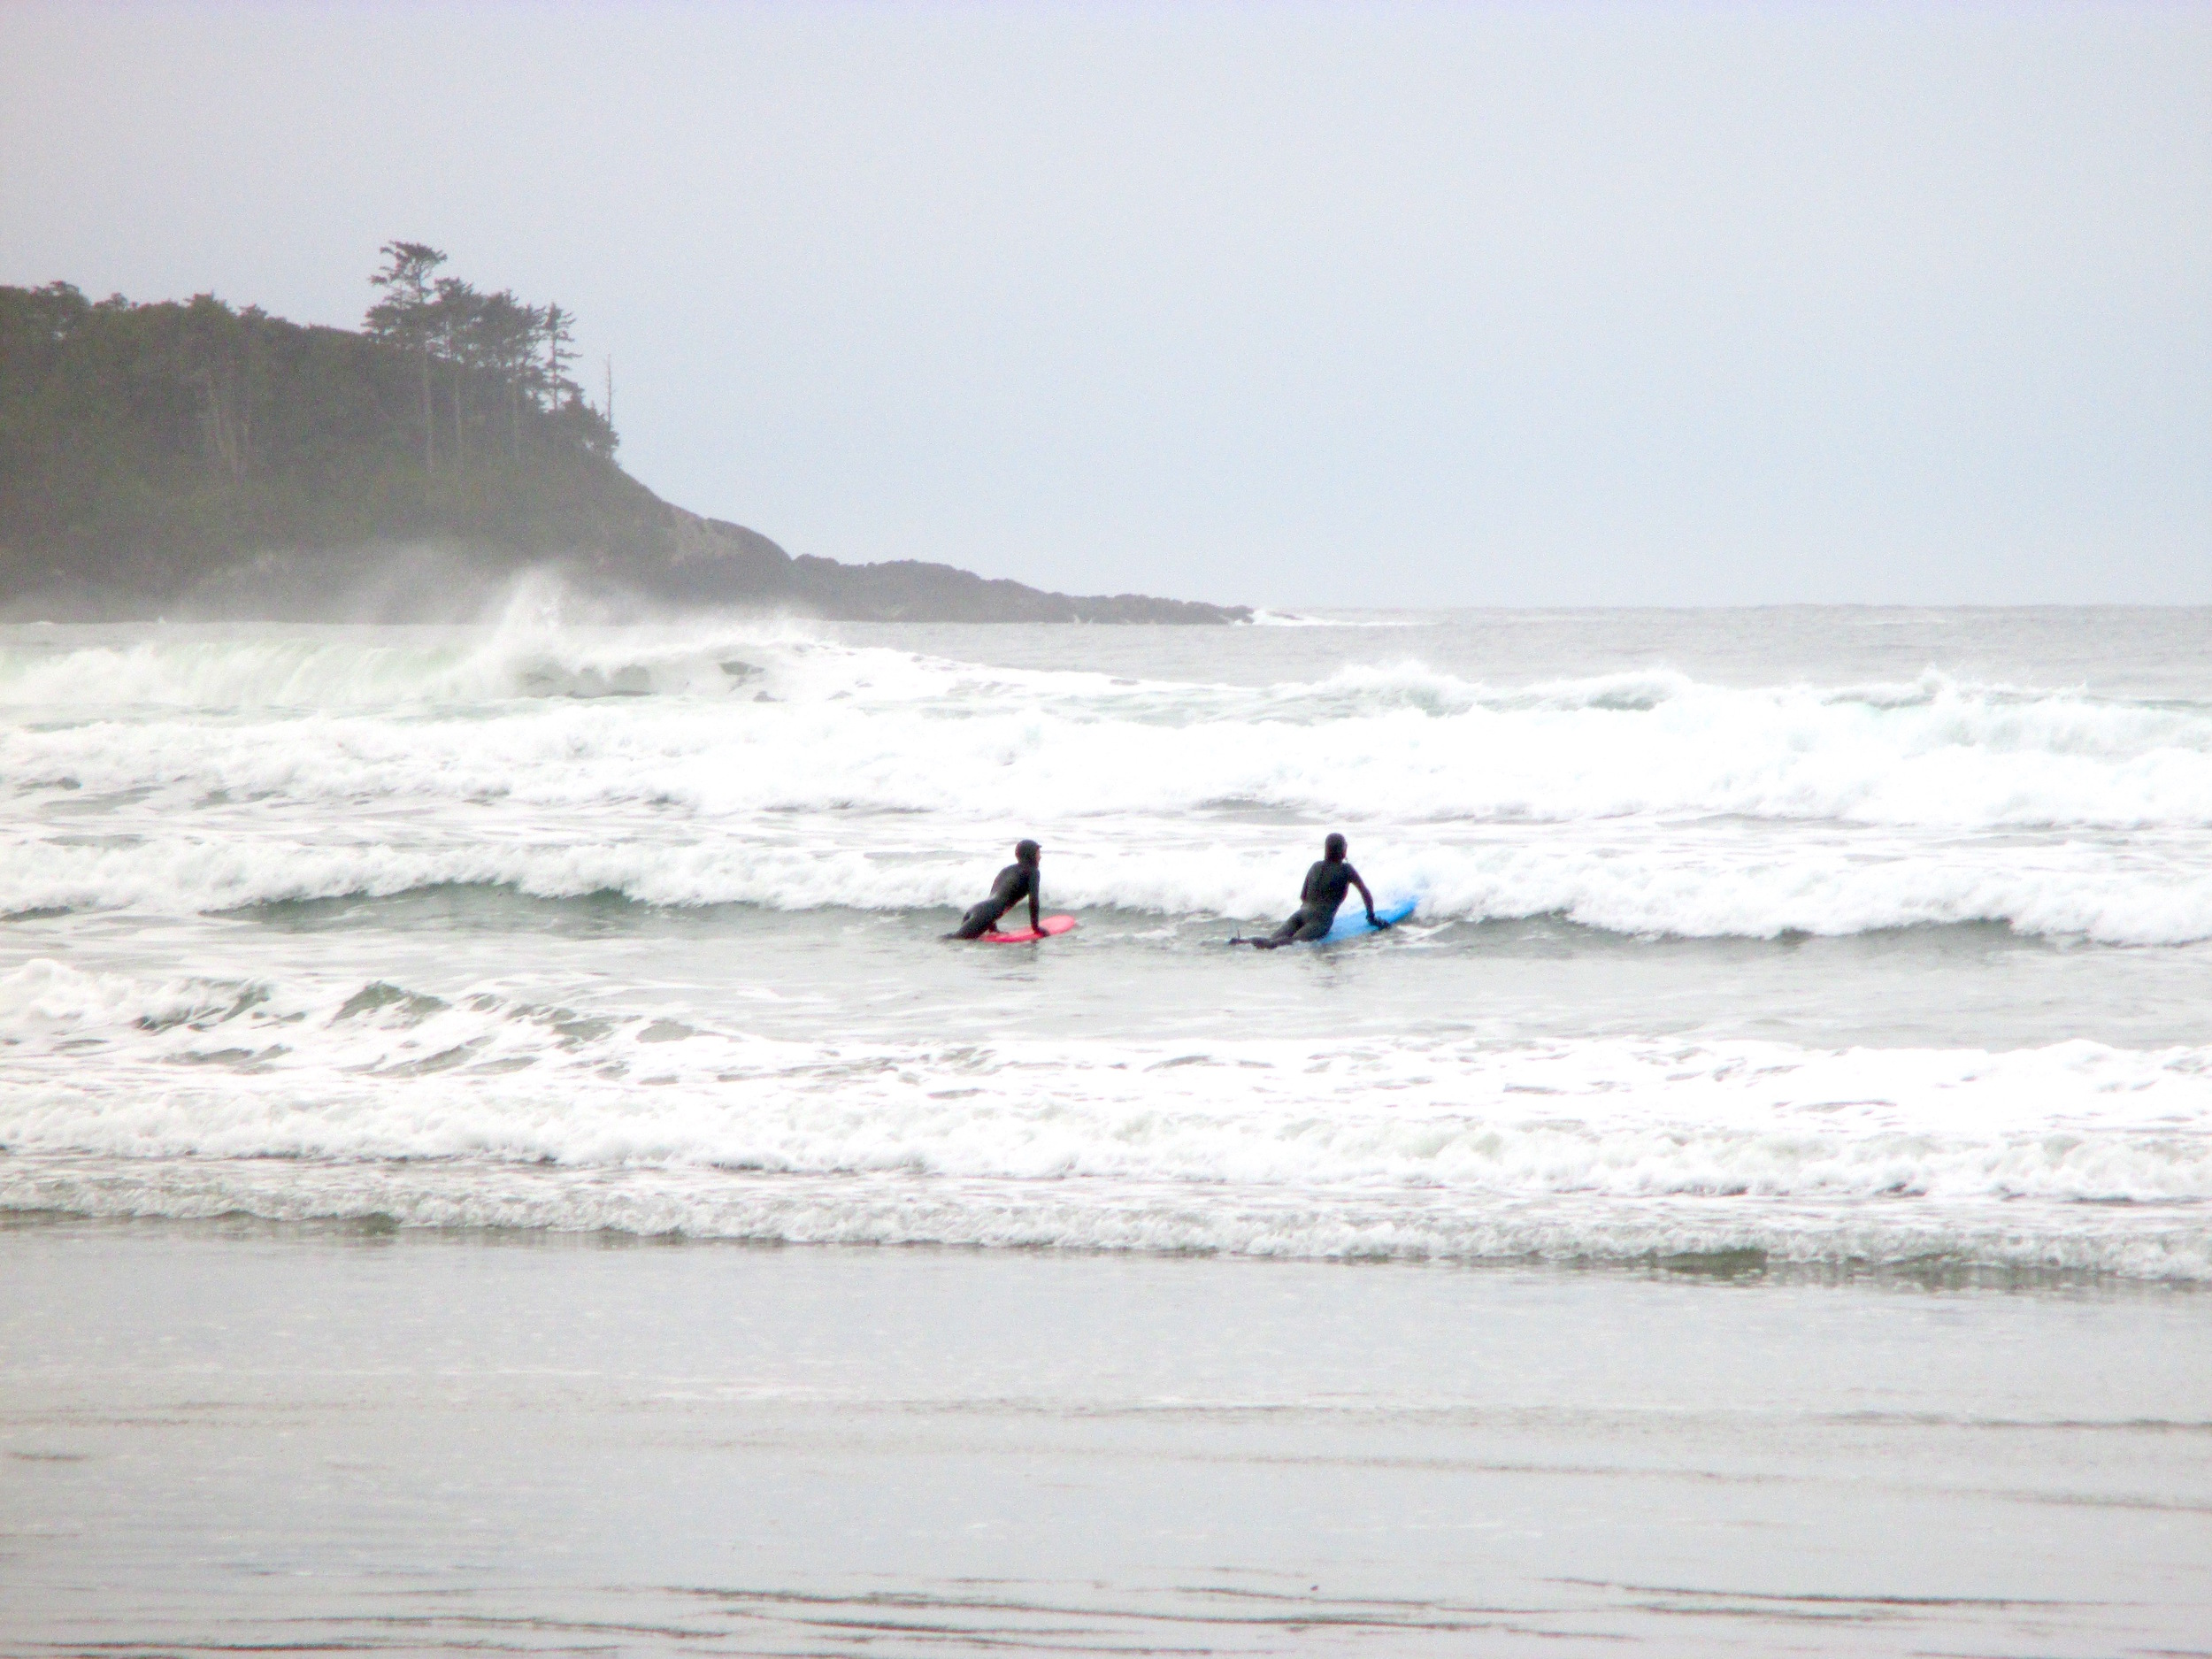 Learning to surf with Roxy-sponsored surfer Catherine Bruhwiler of Tofino Paddle Surf.Read more about it in my article,  Surfing the Canadian Coast , in the Expedia Viewfinder.